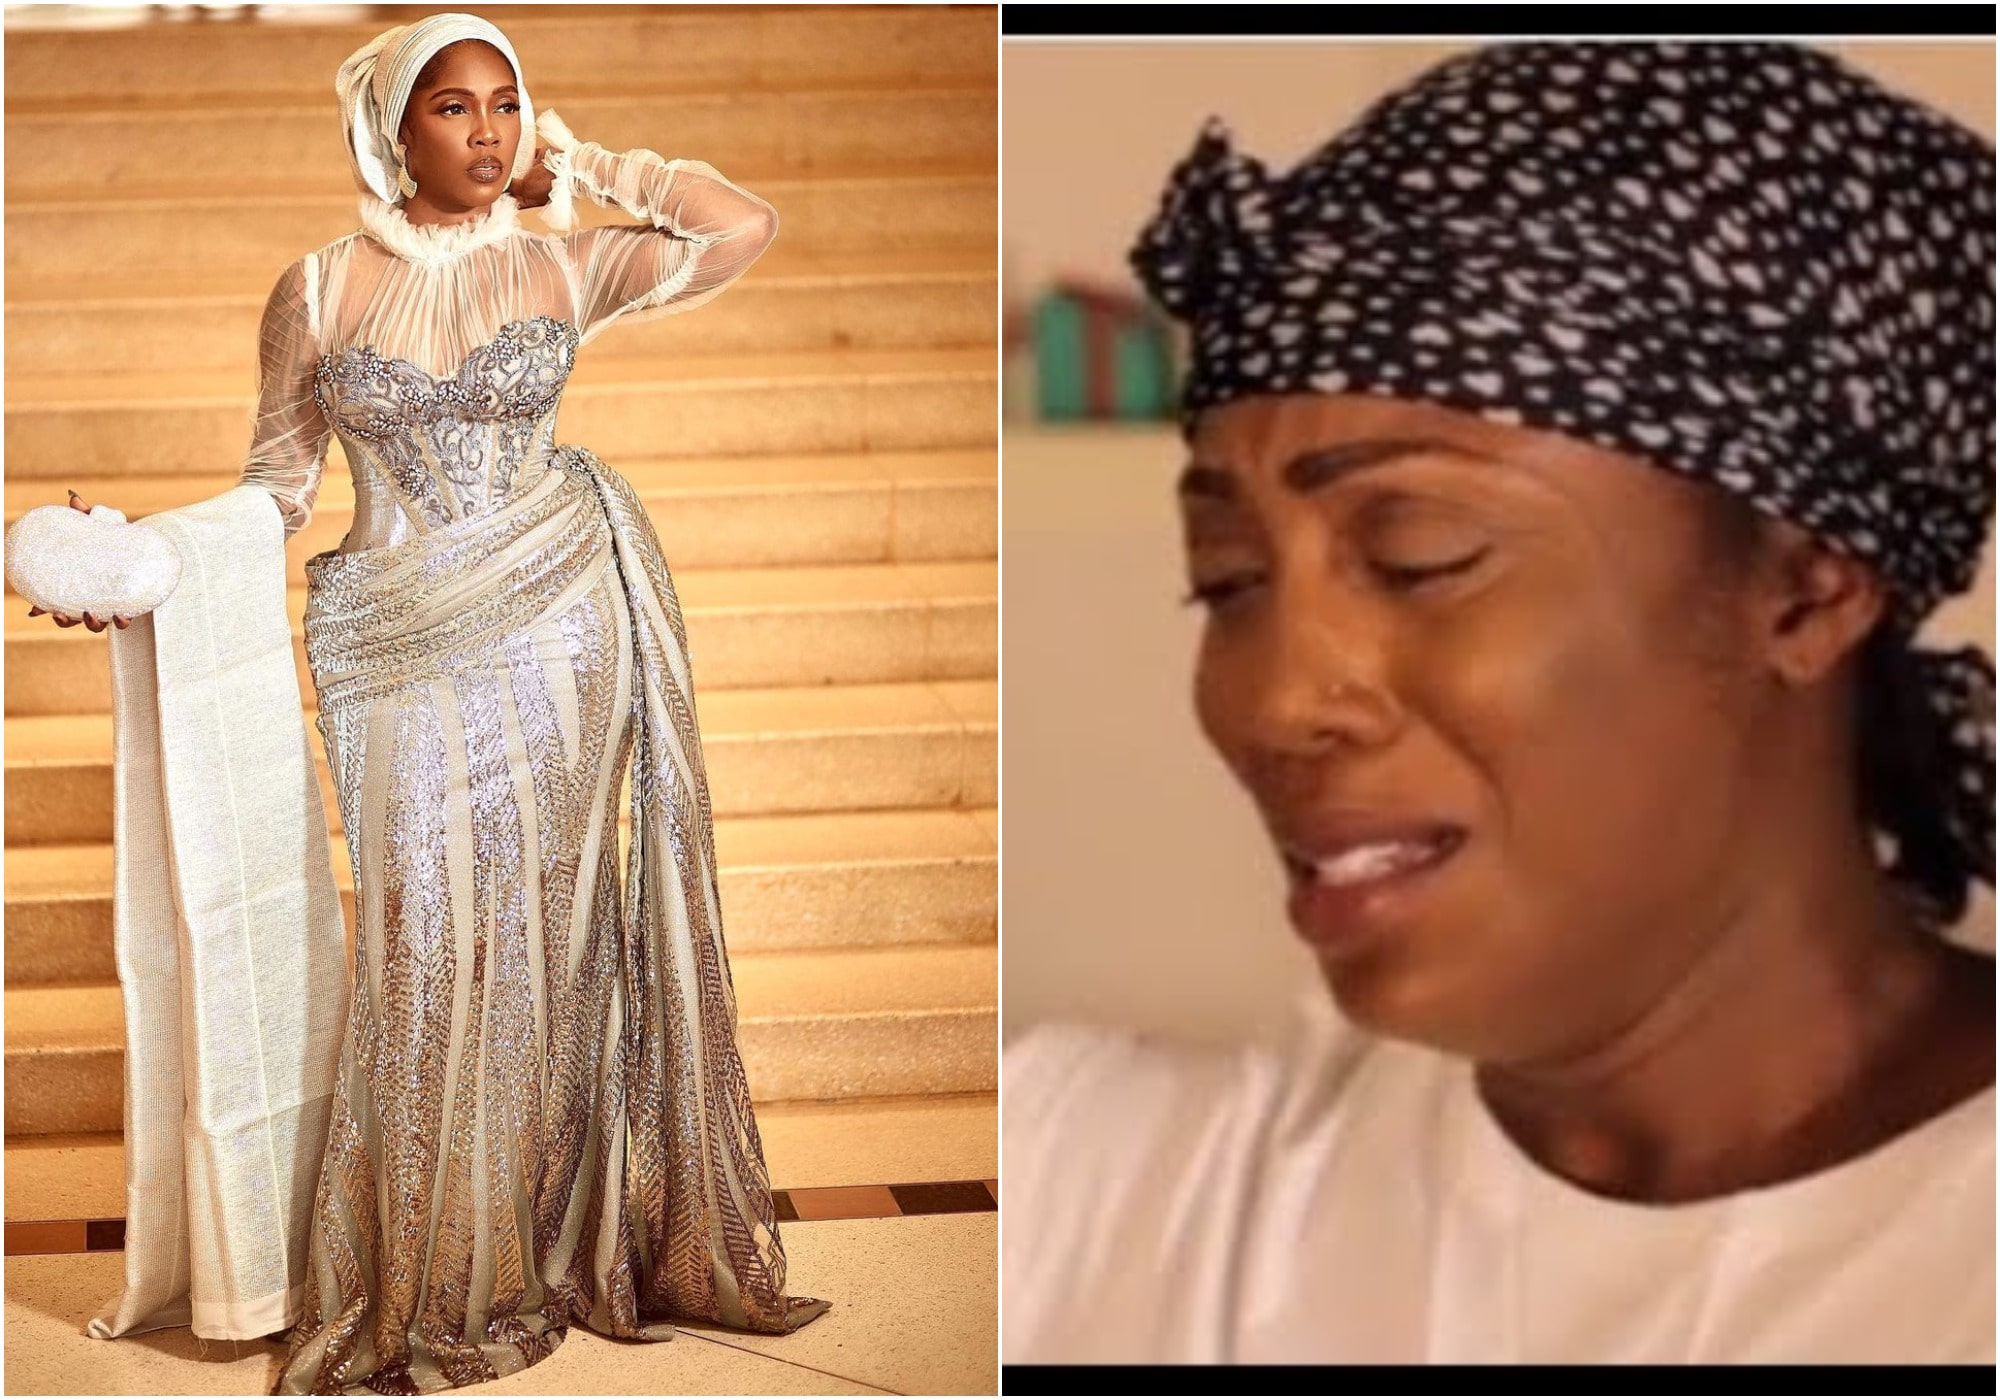 This world is wicked - Fans pray and express concern for Tiwa savage as someone touches her head with money